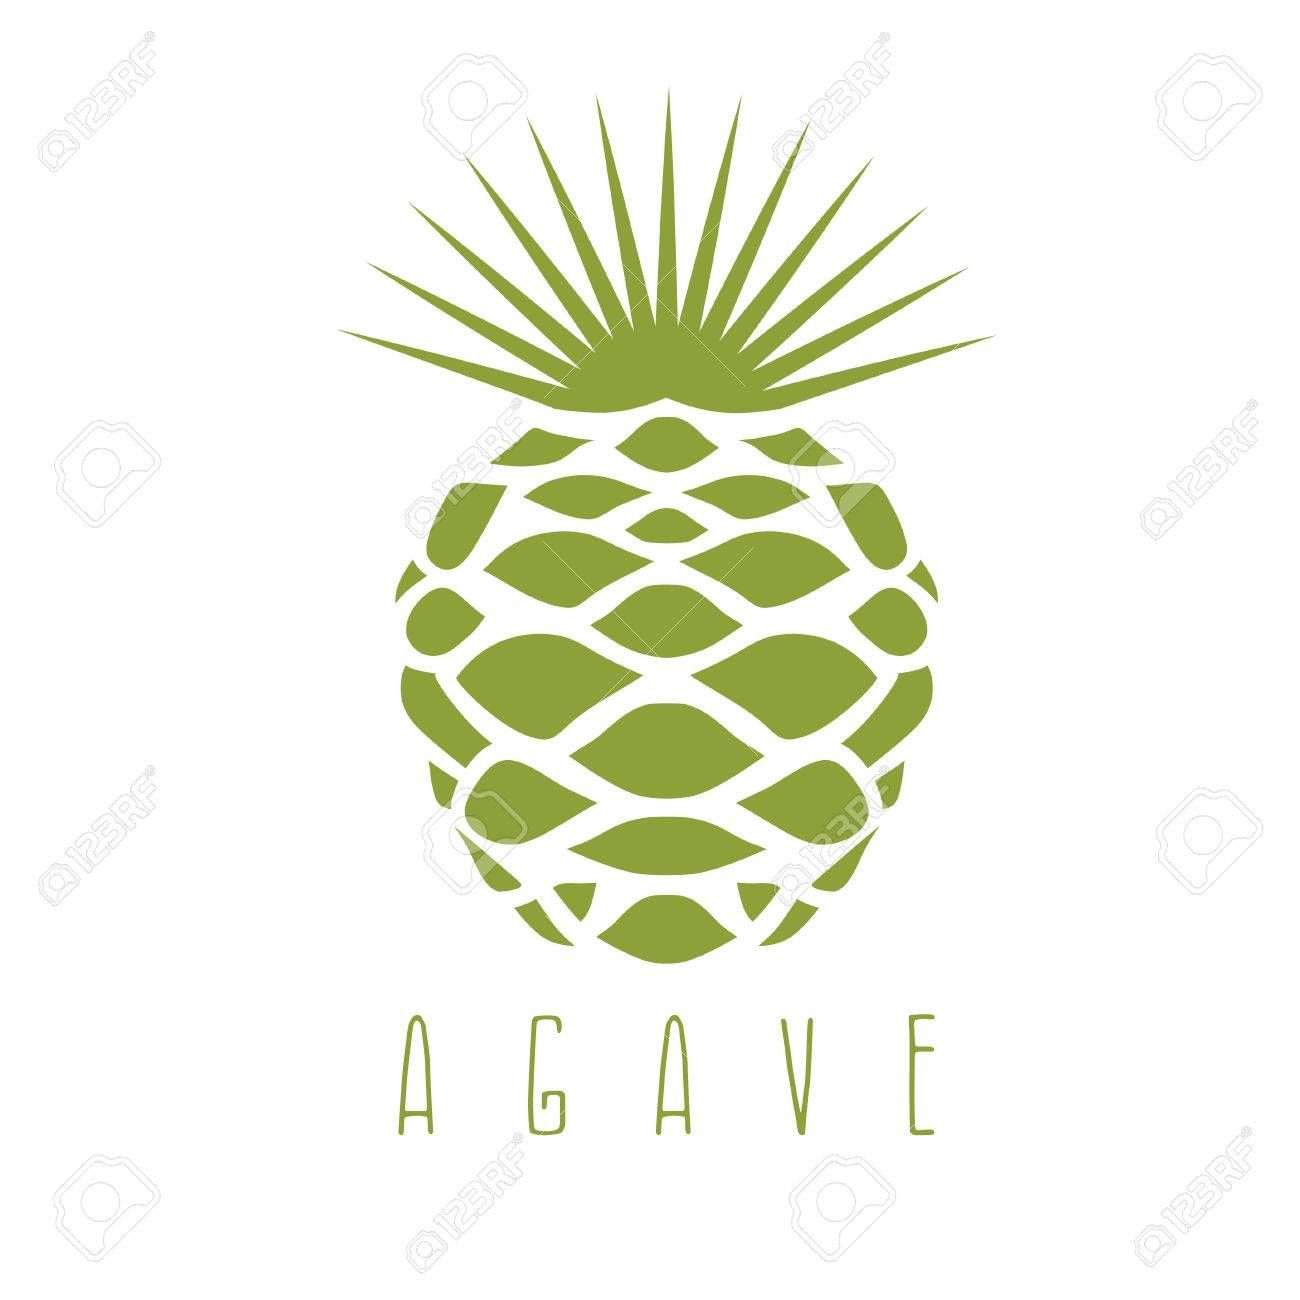 1300x1300 Vector Design Template Of The Agave Plant Stock Vector